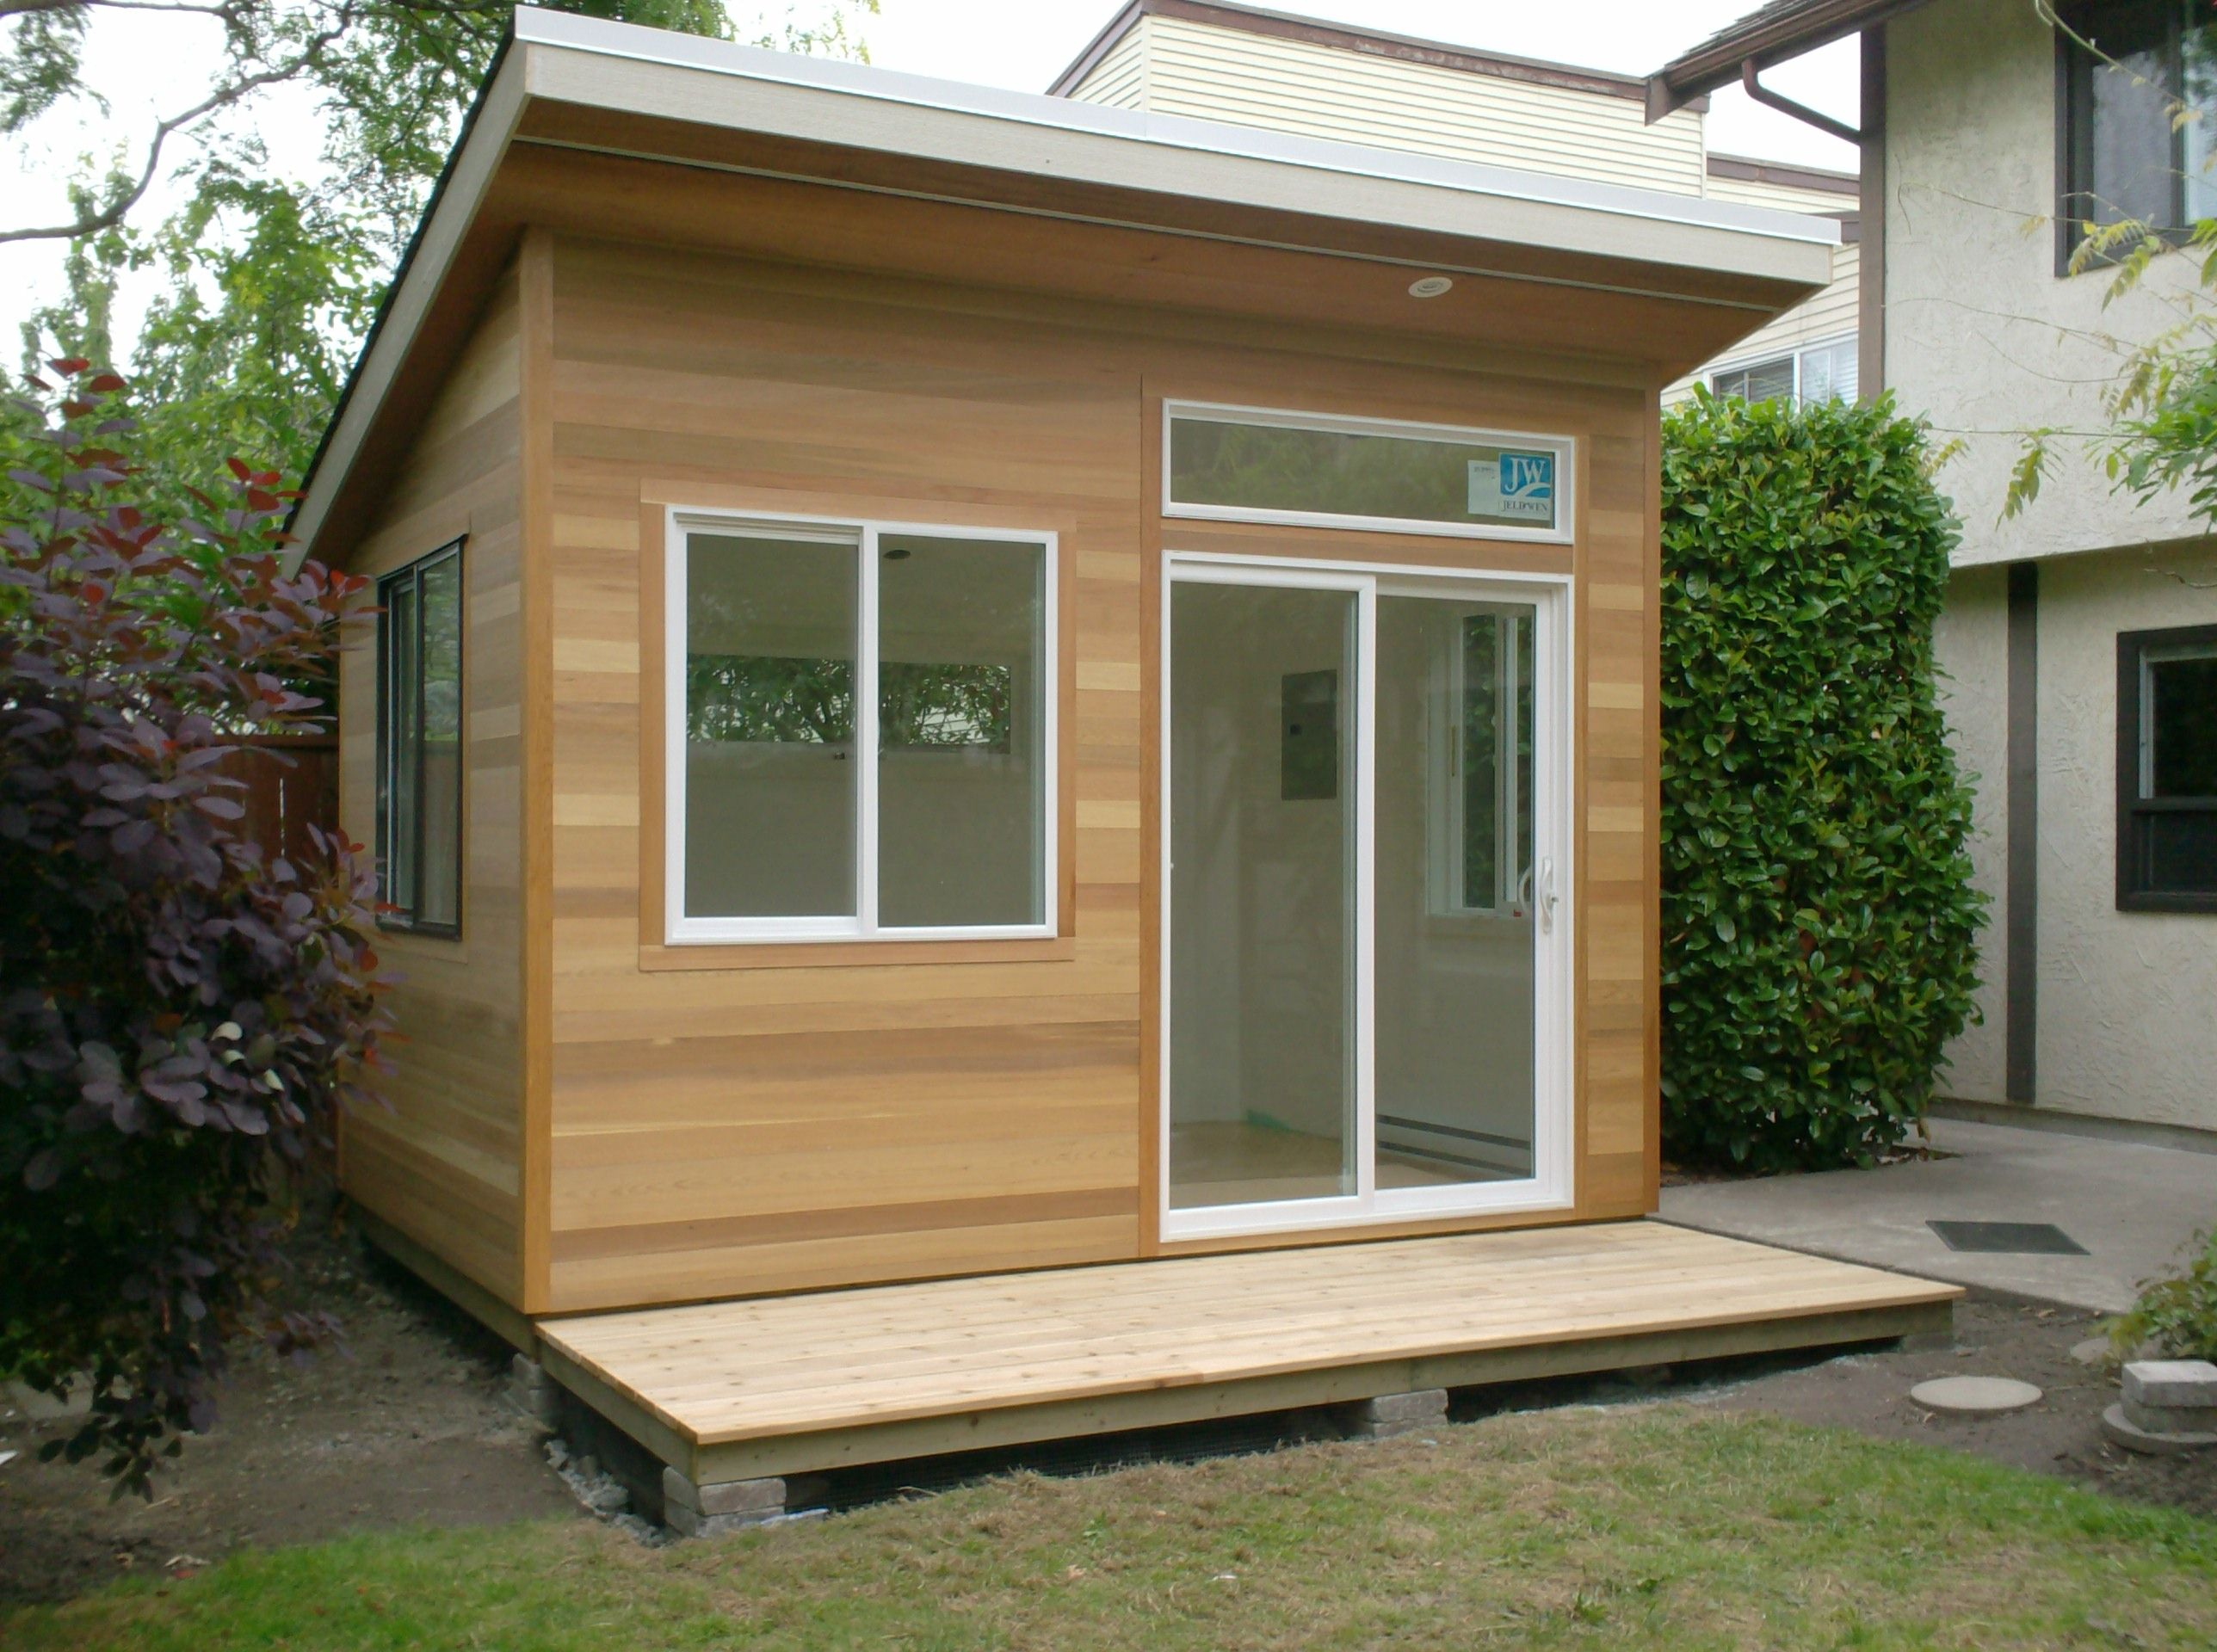 This 8x12 studio has a 9 front wall in order to accommodate the transom window over the door and a 4 wide cedar deck the interior walls are drywall